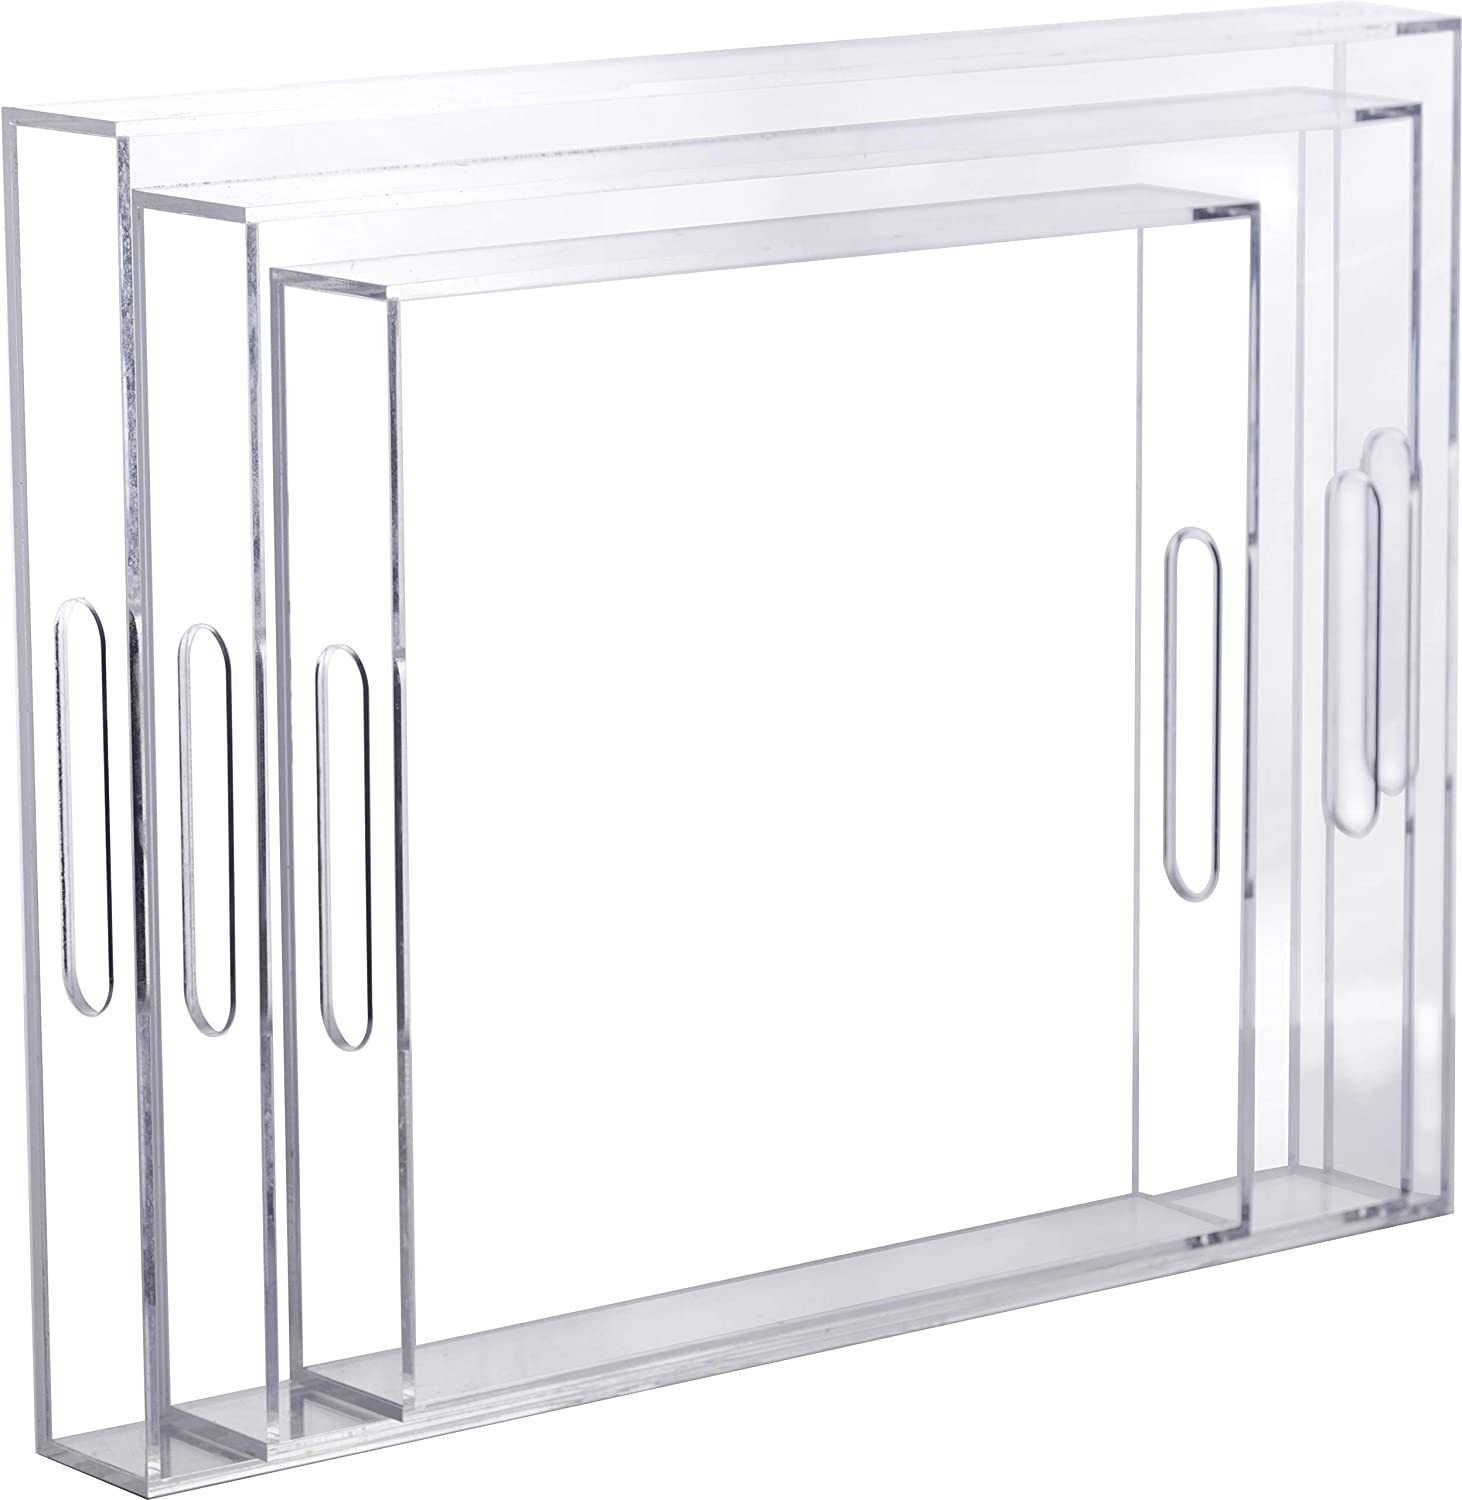 Tinker Spoon Ash Clear Acrylic Serving of Popular shop is the lowest price challenge Tray 17 Miami Mall Set 3: